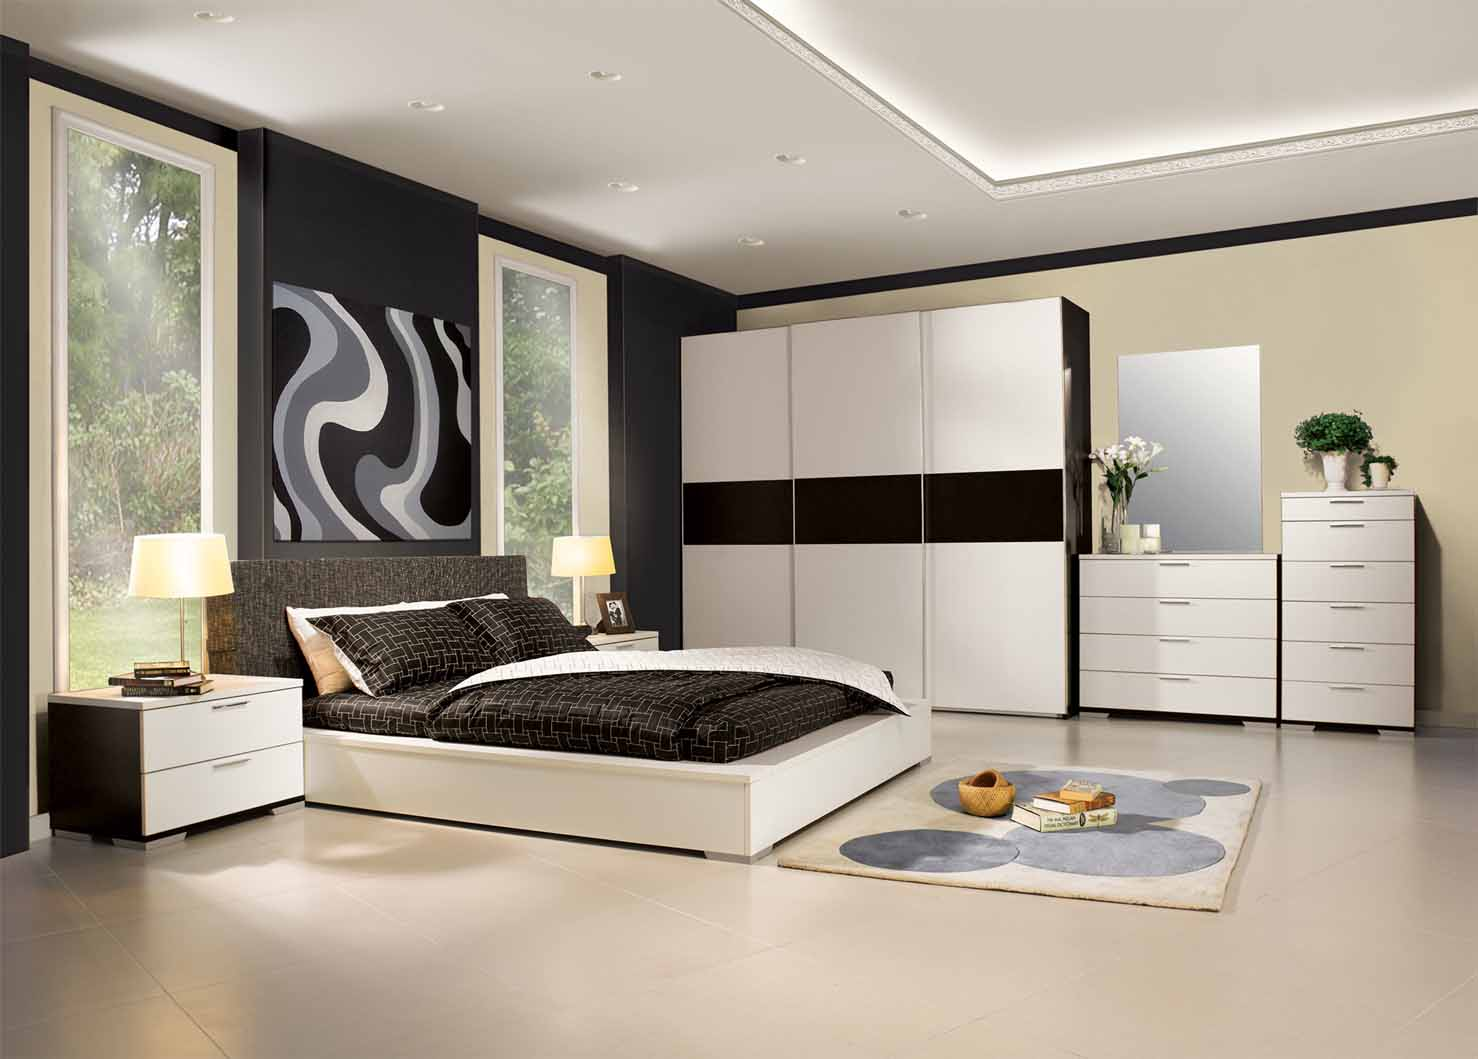 Awesome bedrooms ideas pictures 2014 decorating bedrooms for Bedroom designs pictures